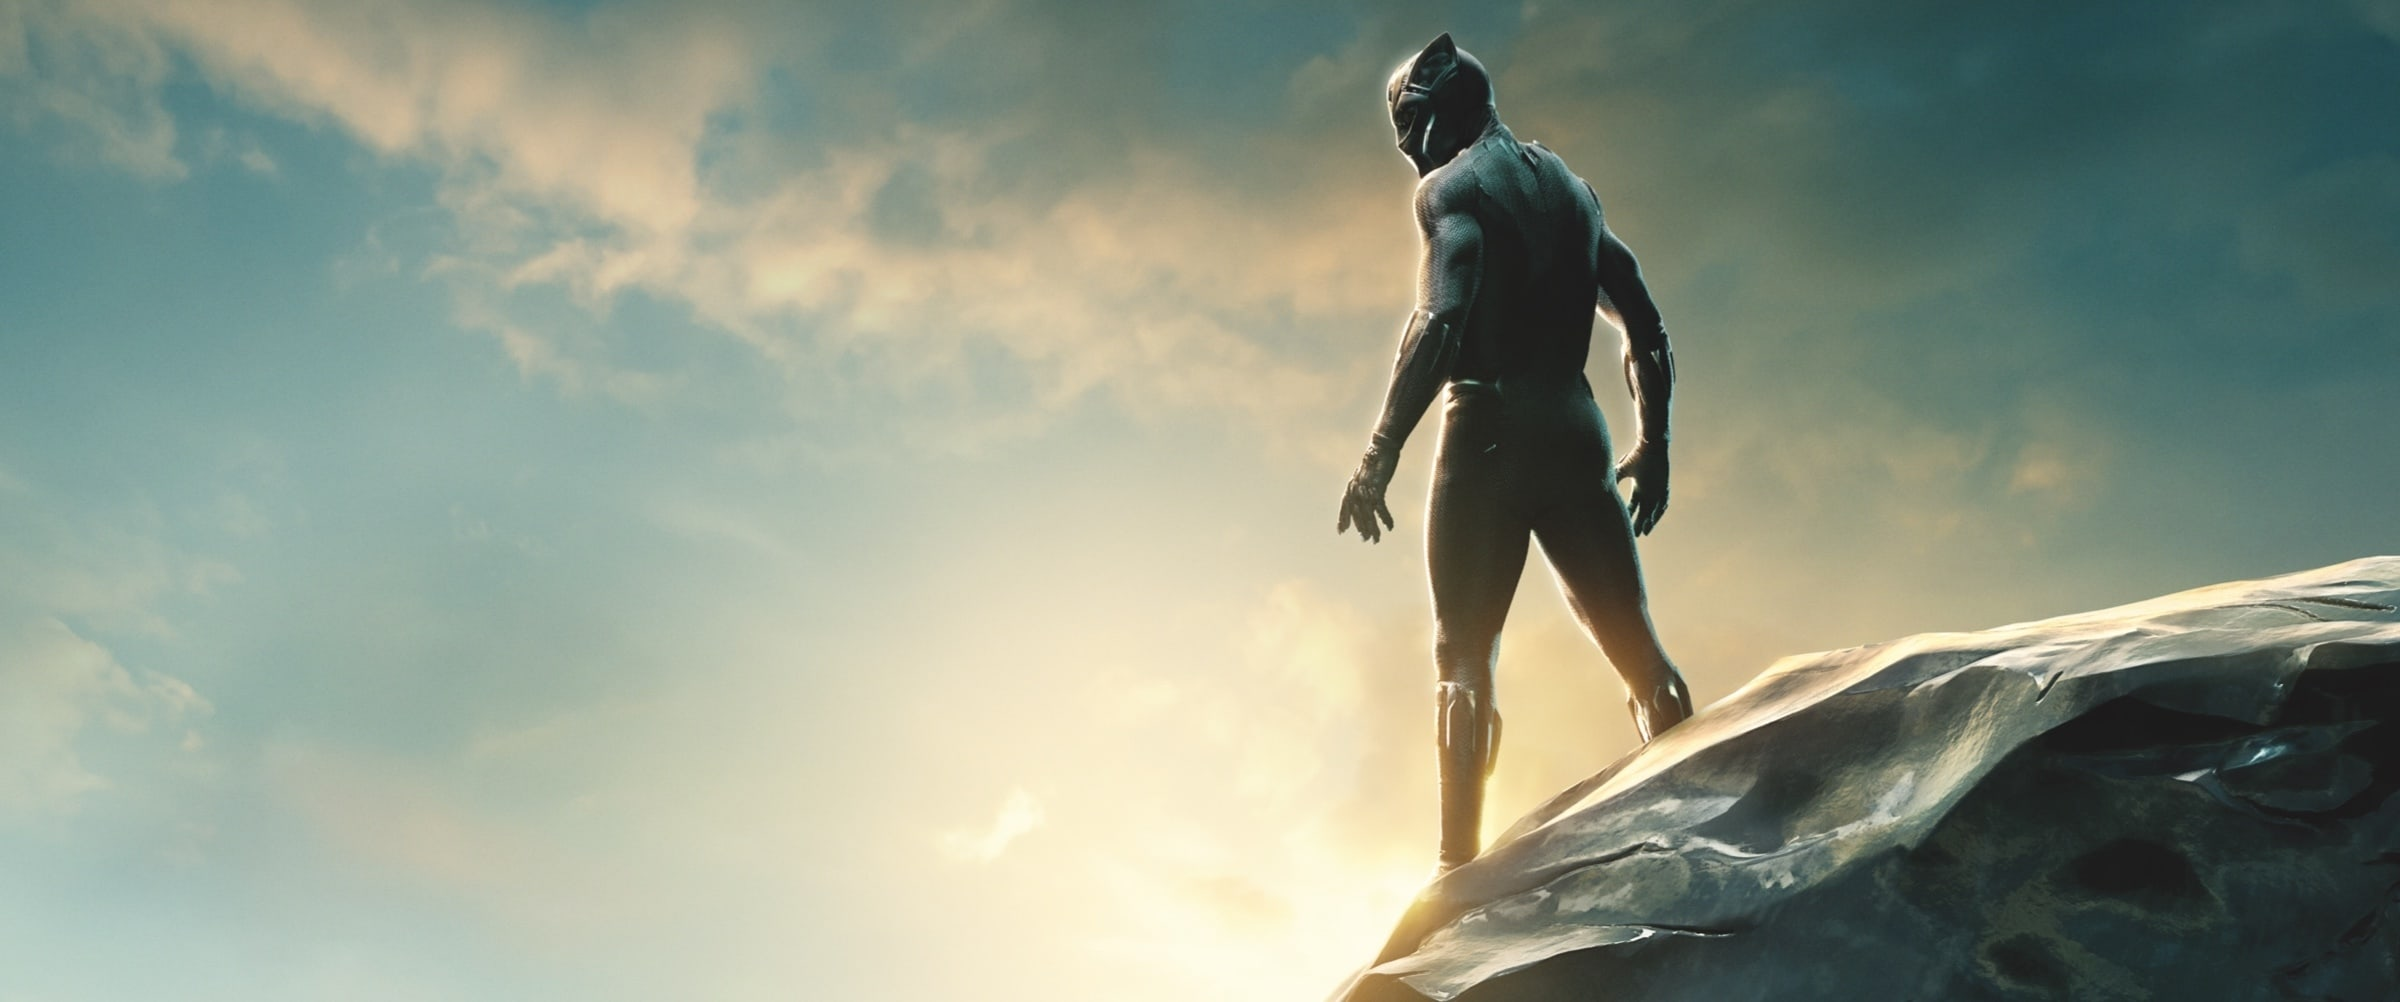 Black Panther | 14 Februari in de bioscoop